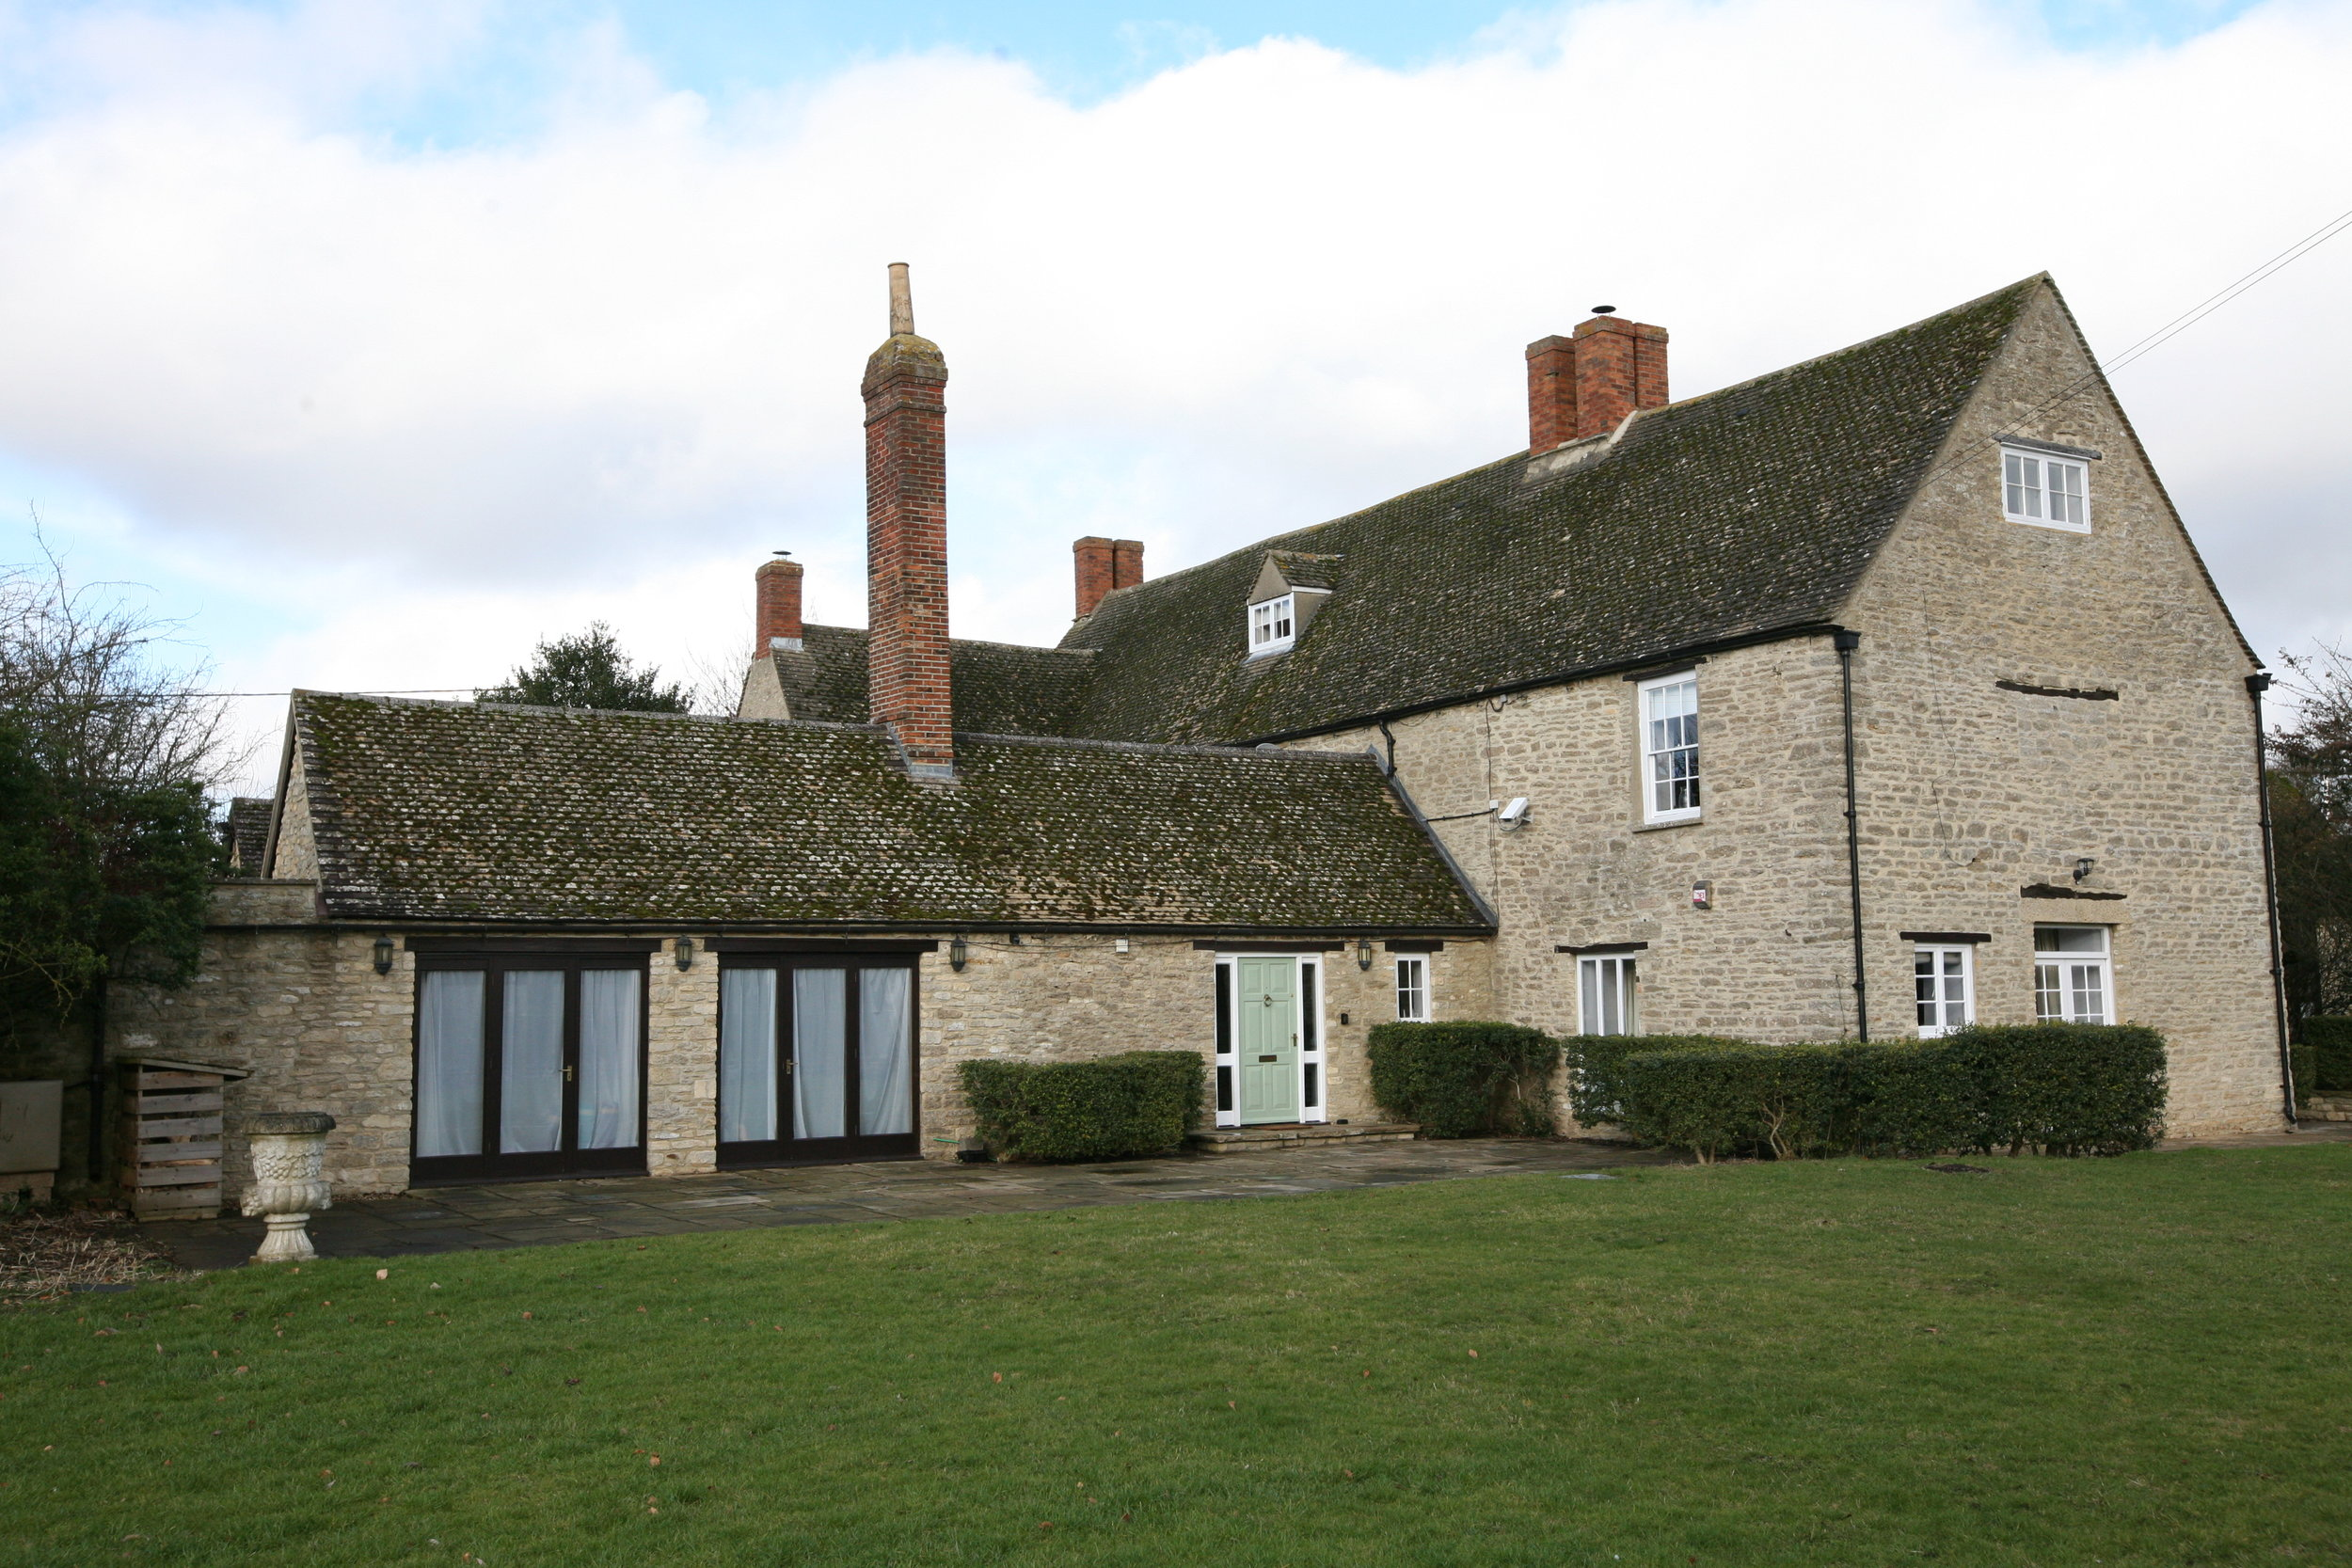 - YOGA, MINDFULNESS MEDITATION RETREAT12th-14th October, 20172 night, 2 day RetreatManor Farm, Thrupp, Oxfordshire.Single Occupancy £425pp (limited availability)Twin Occupancy £355ppTriple occupancy £340 pp